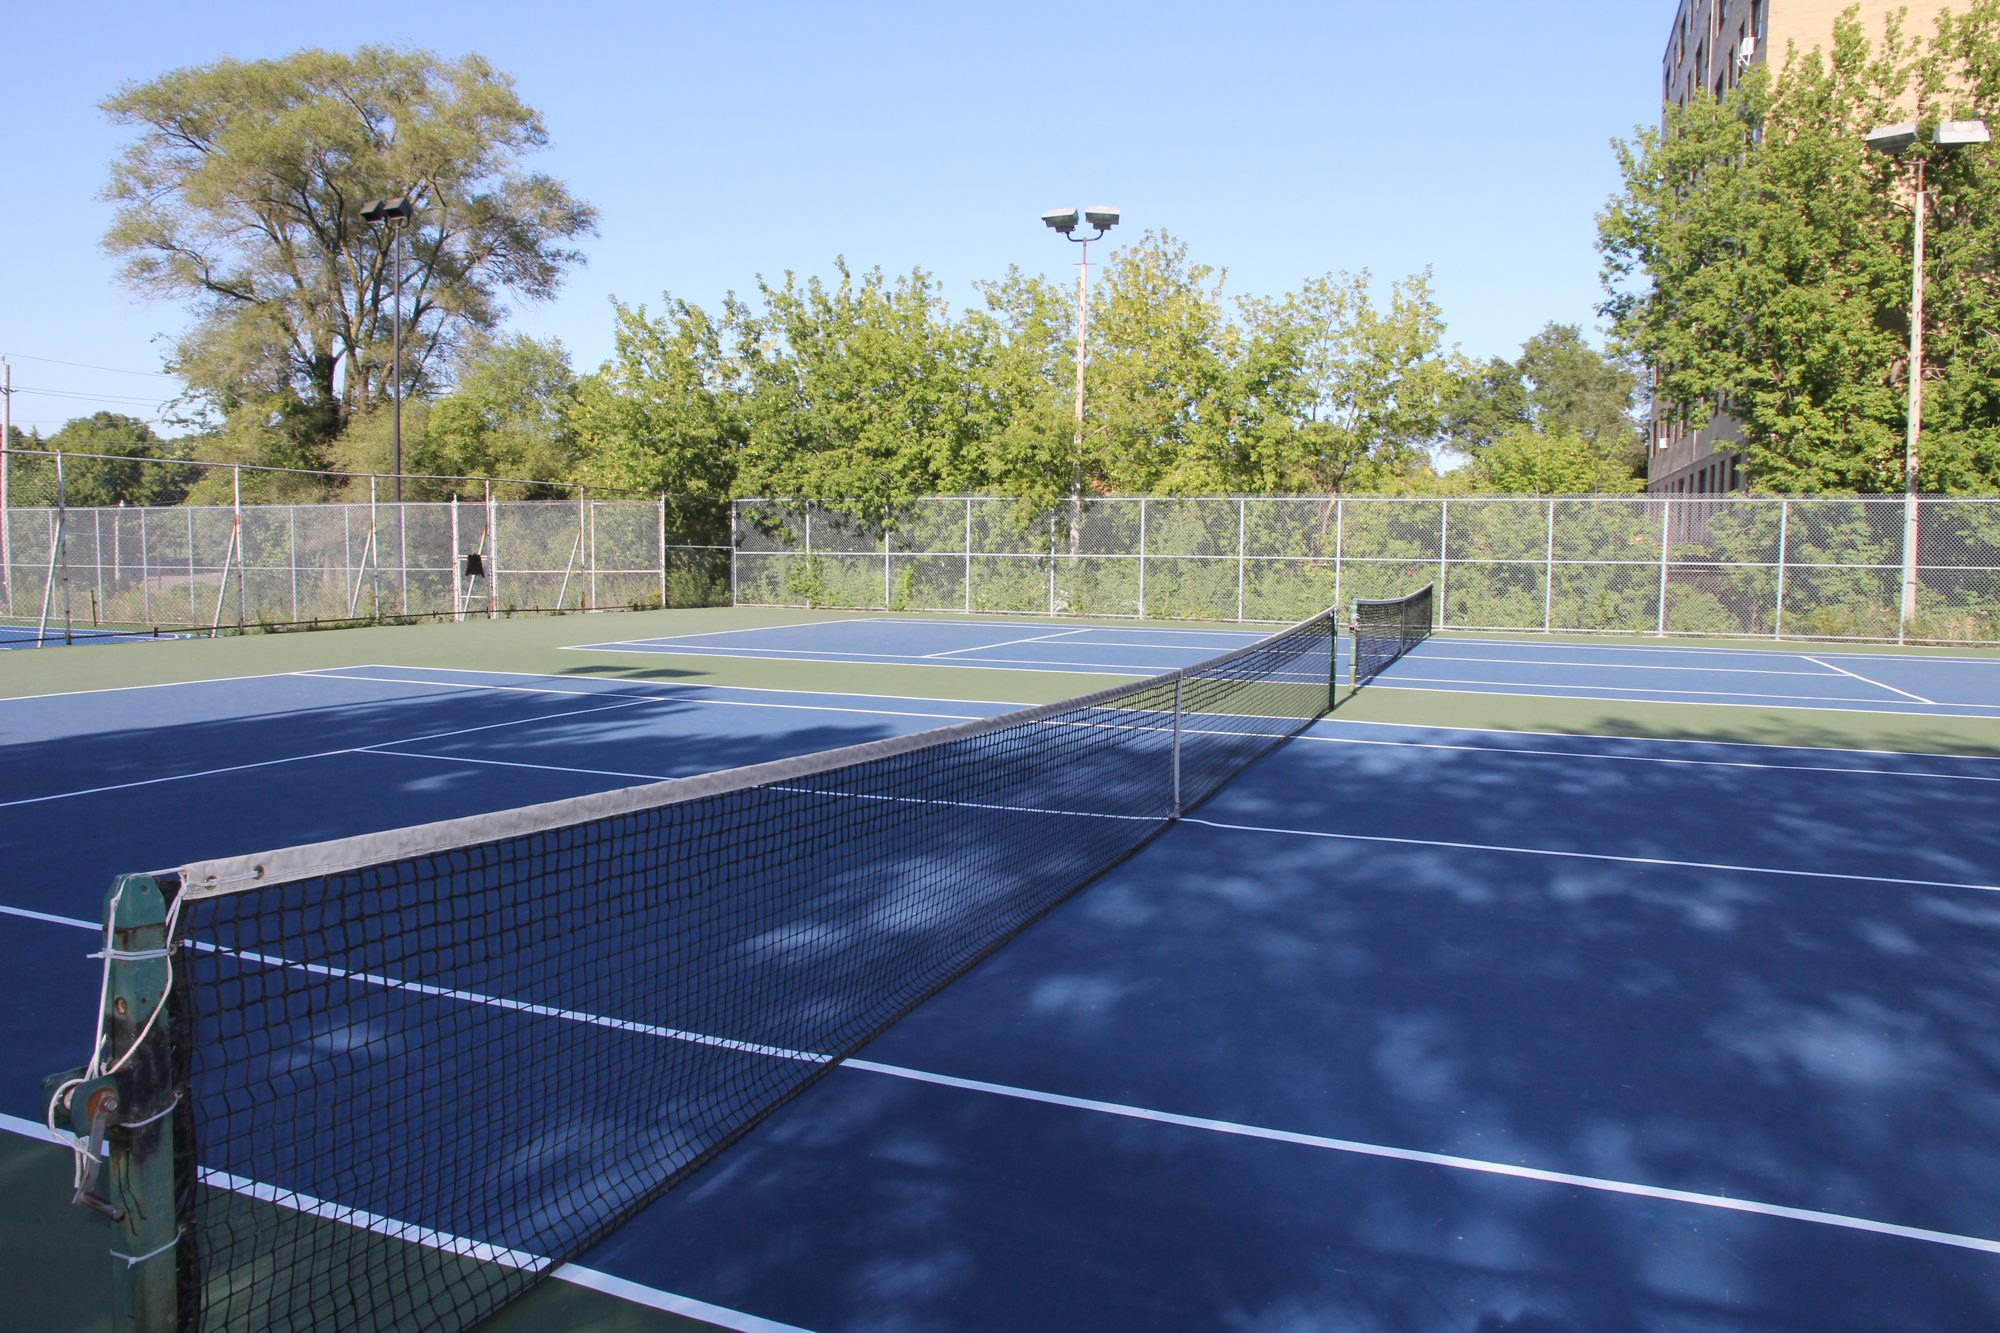 Newly resurfaced blue and green tennis courts in Toronto